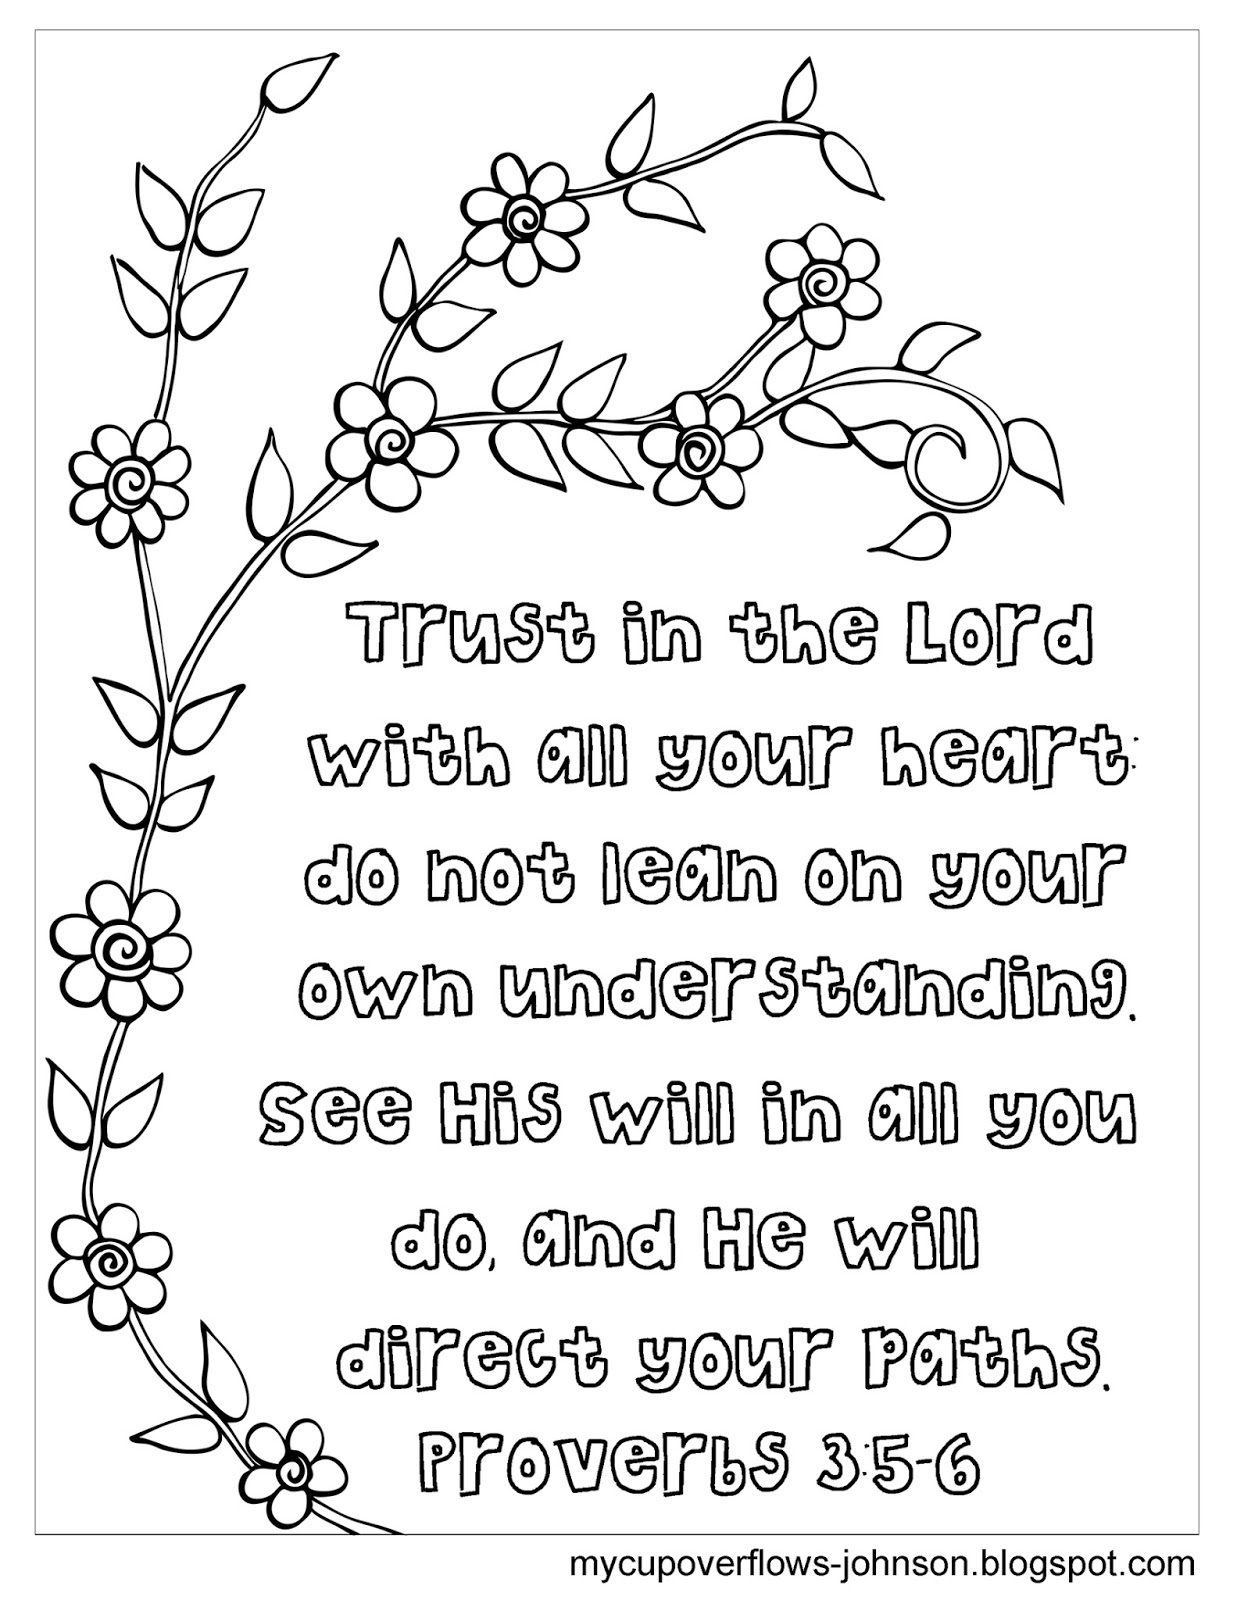 My Cup Overflows Trust The Lord Coloring Page